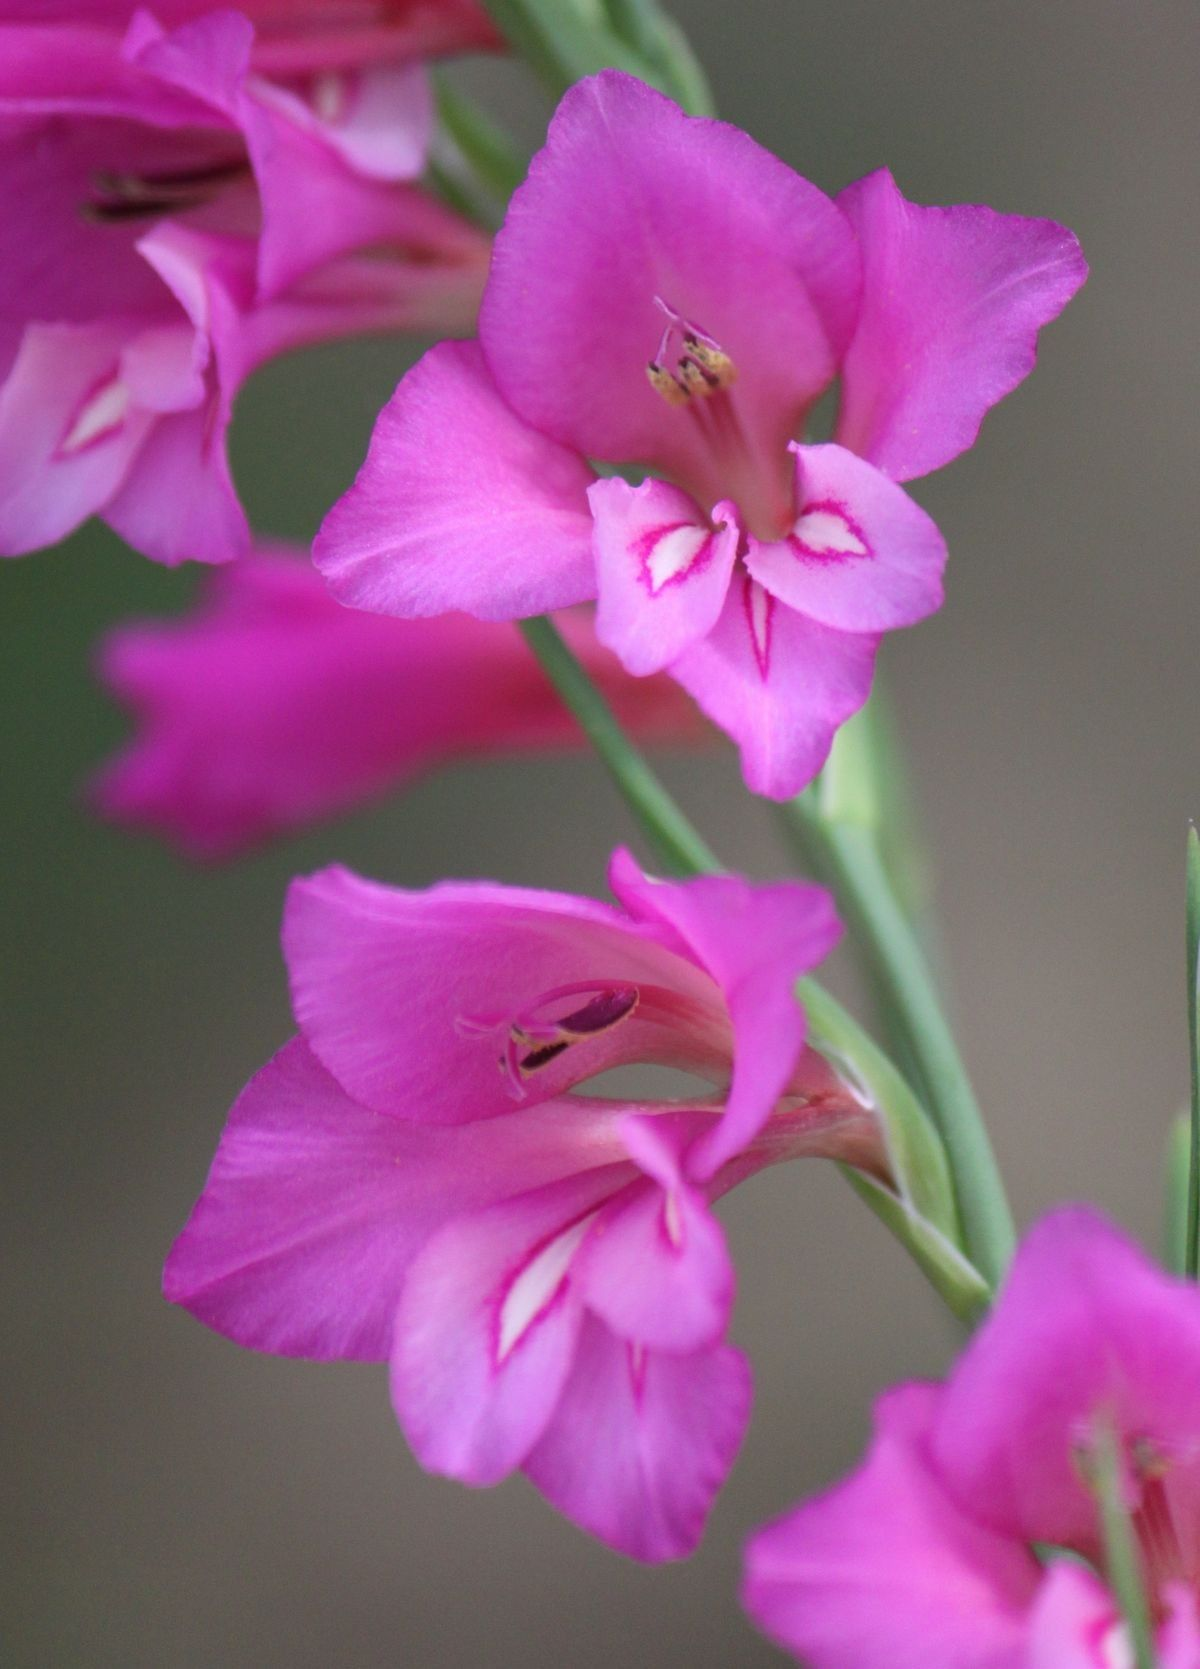 Pin By Melissa Johnson On Orchids Pinterest Orchids Flowers And